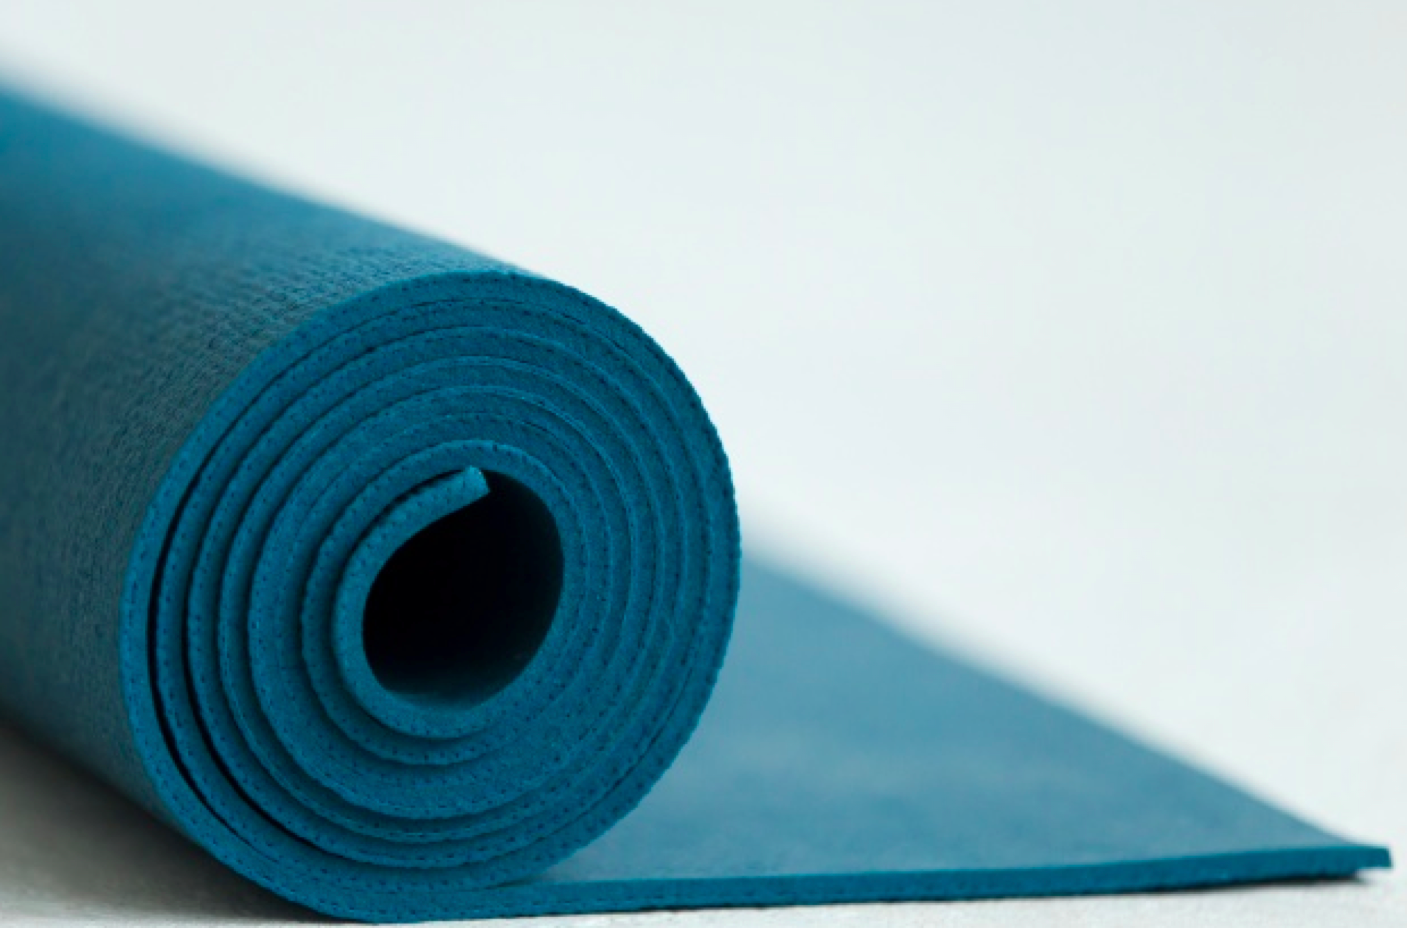 You can use an extra thick yoga mat to relax during this exercise.